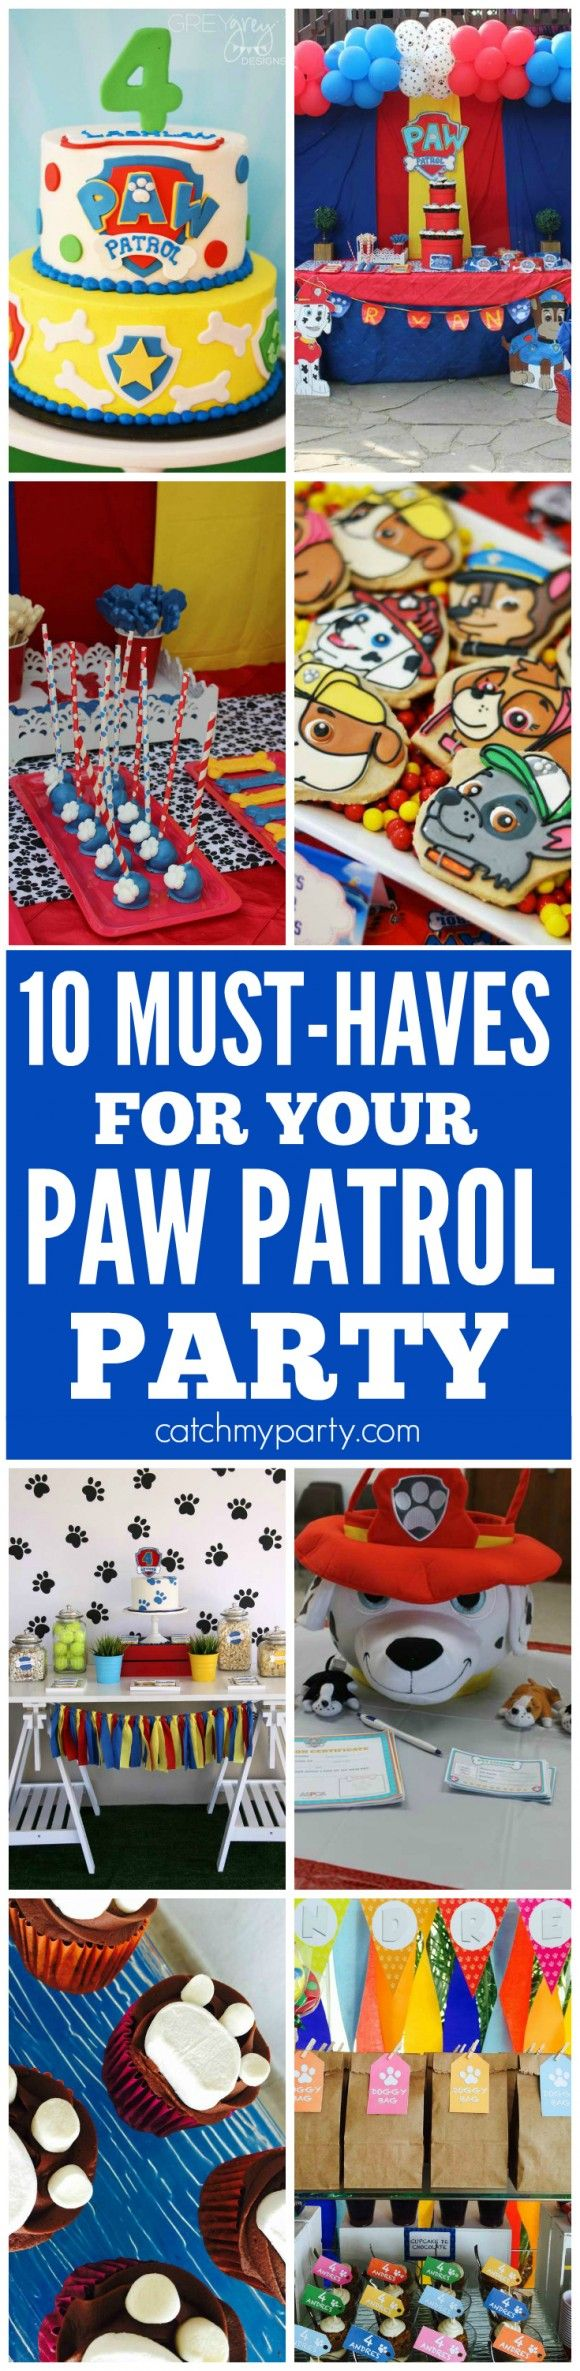 10 Must-Haves for your Paw Patrol party | CatchMyParty.com